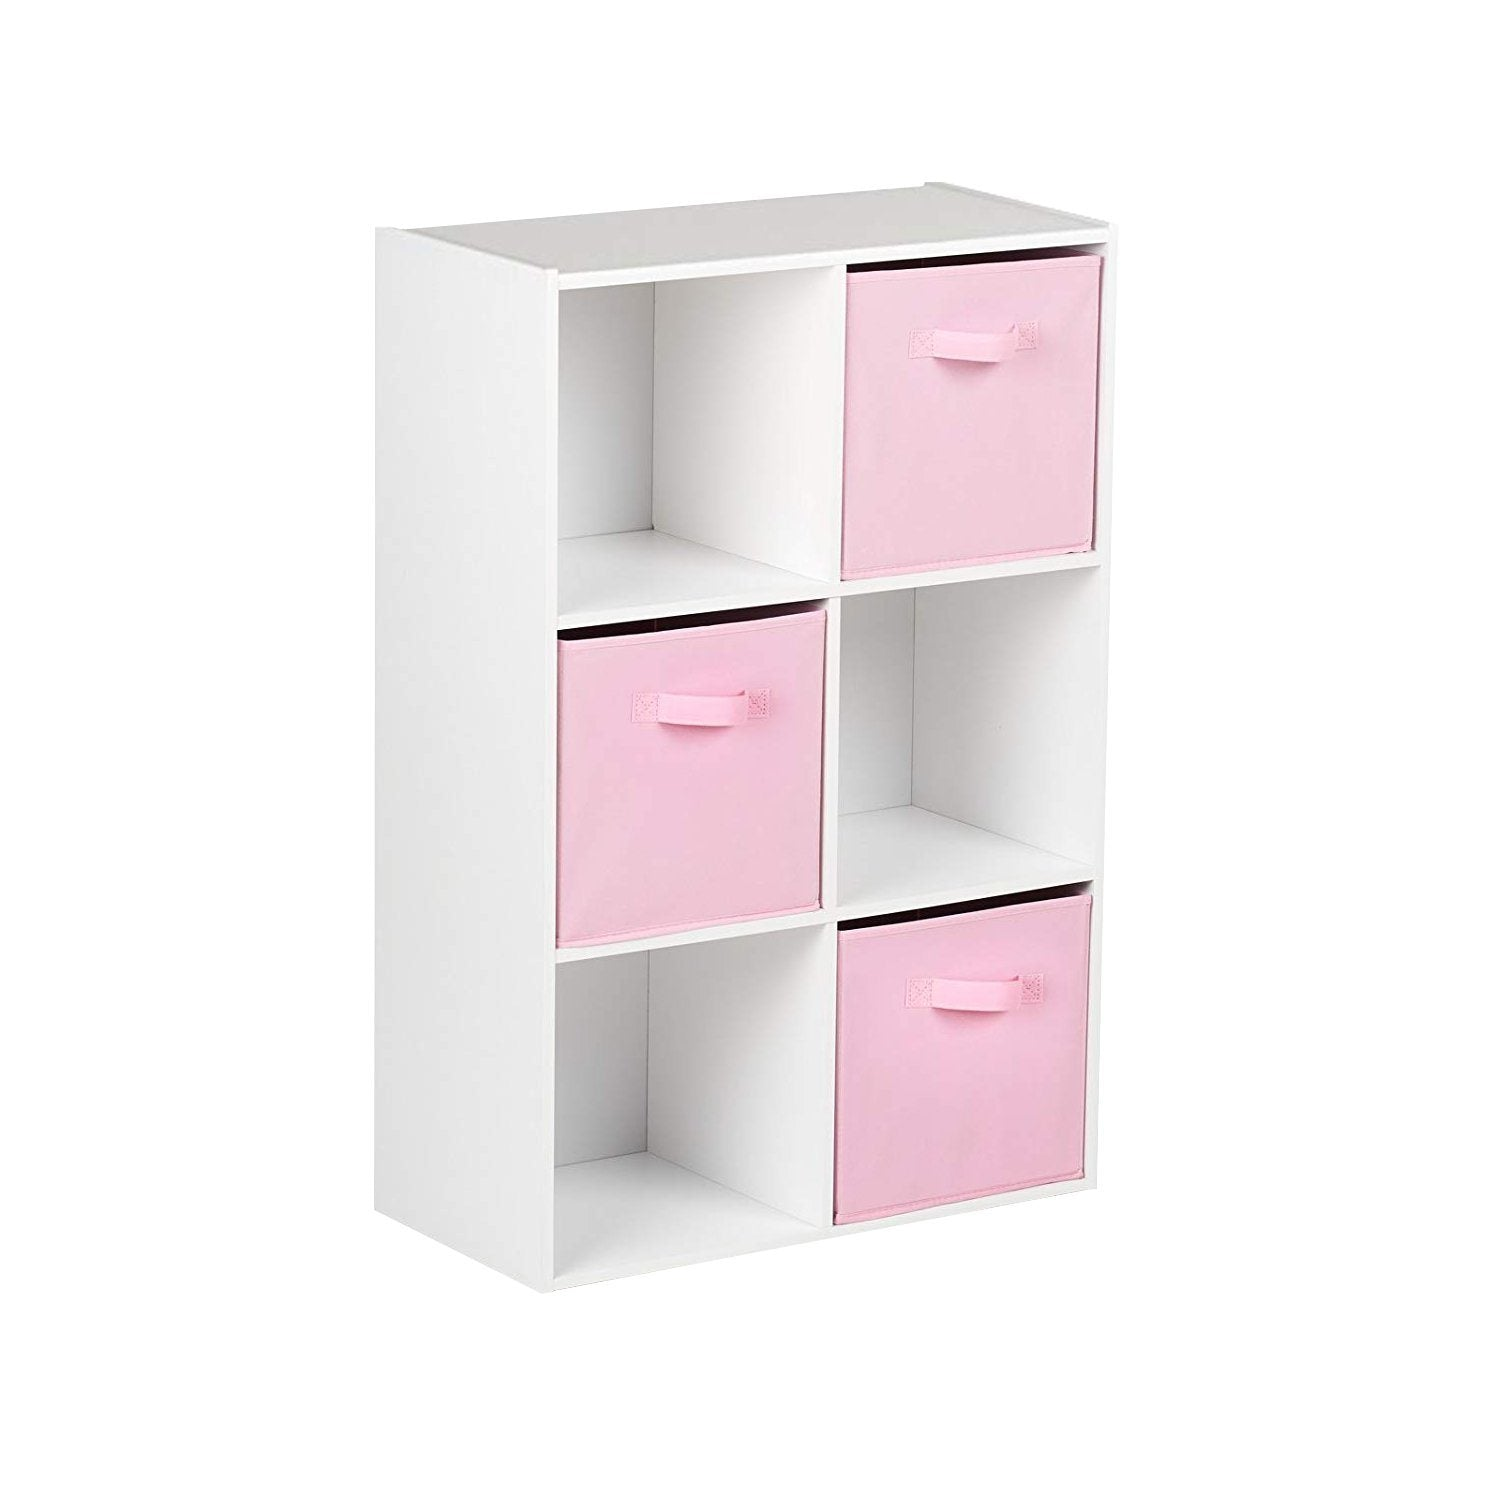 6 Cube White Bookcase Wooden Display Unit Shelving Storage Bookshelf Shelves (Pink Basket) - Laura James